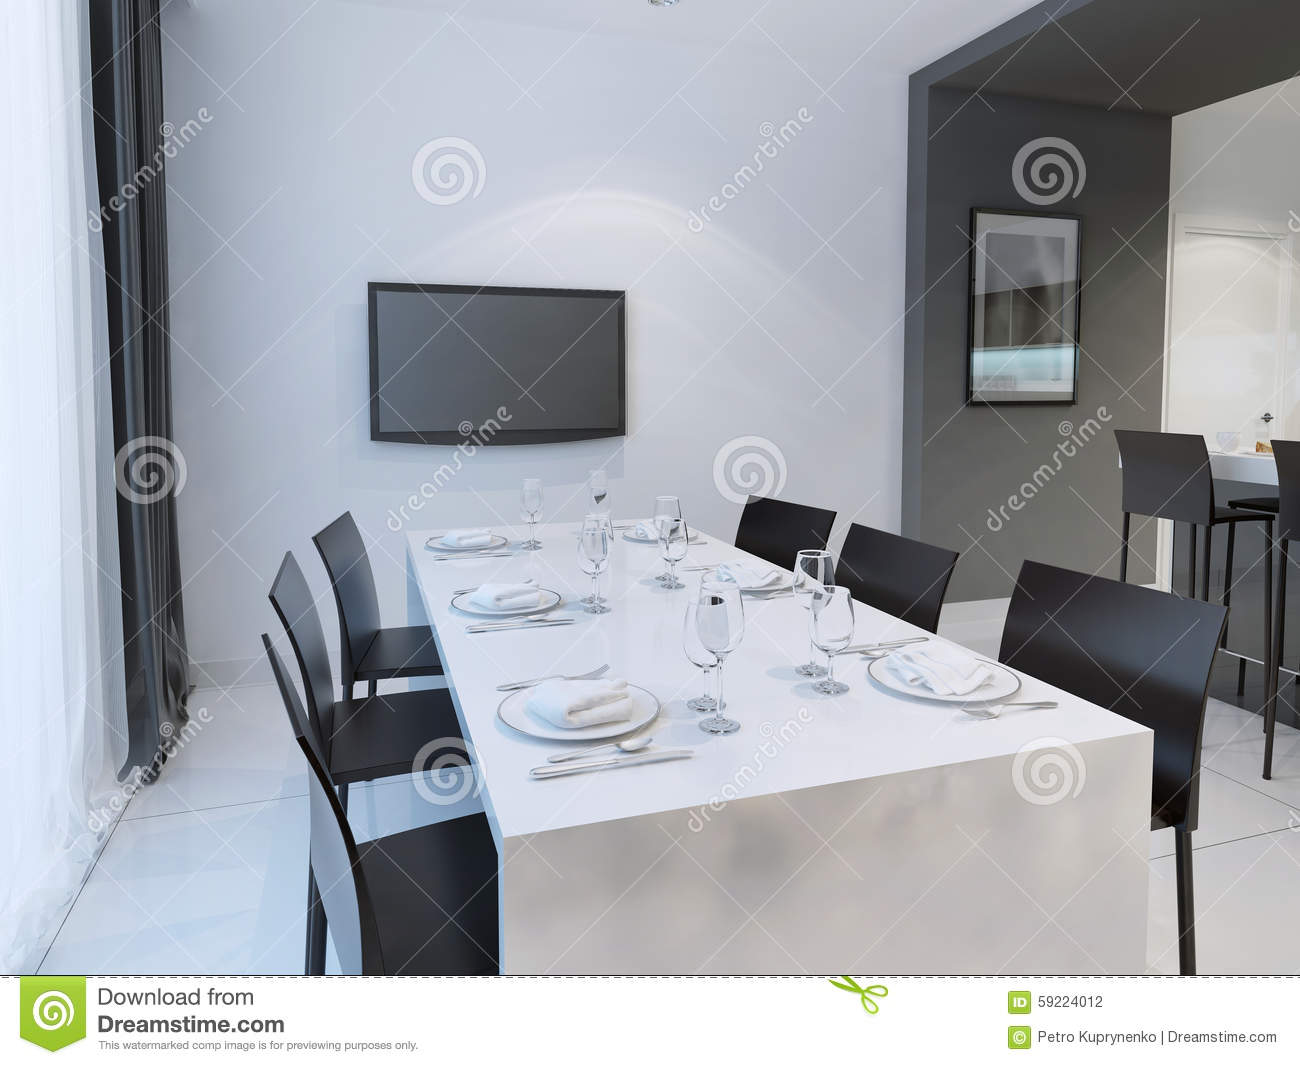 Black and white dining room trend dining with dining table set for six people hanging tv on the wall 3d render